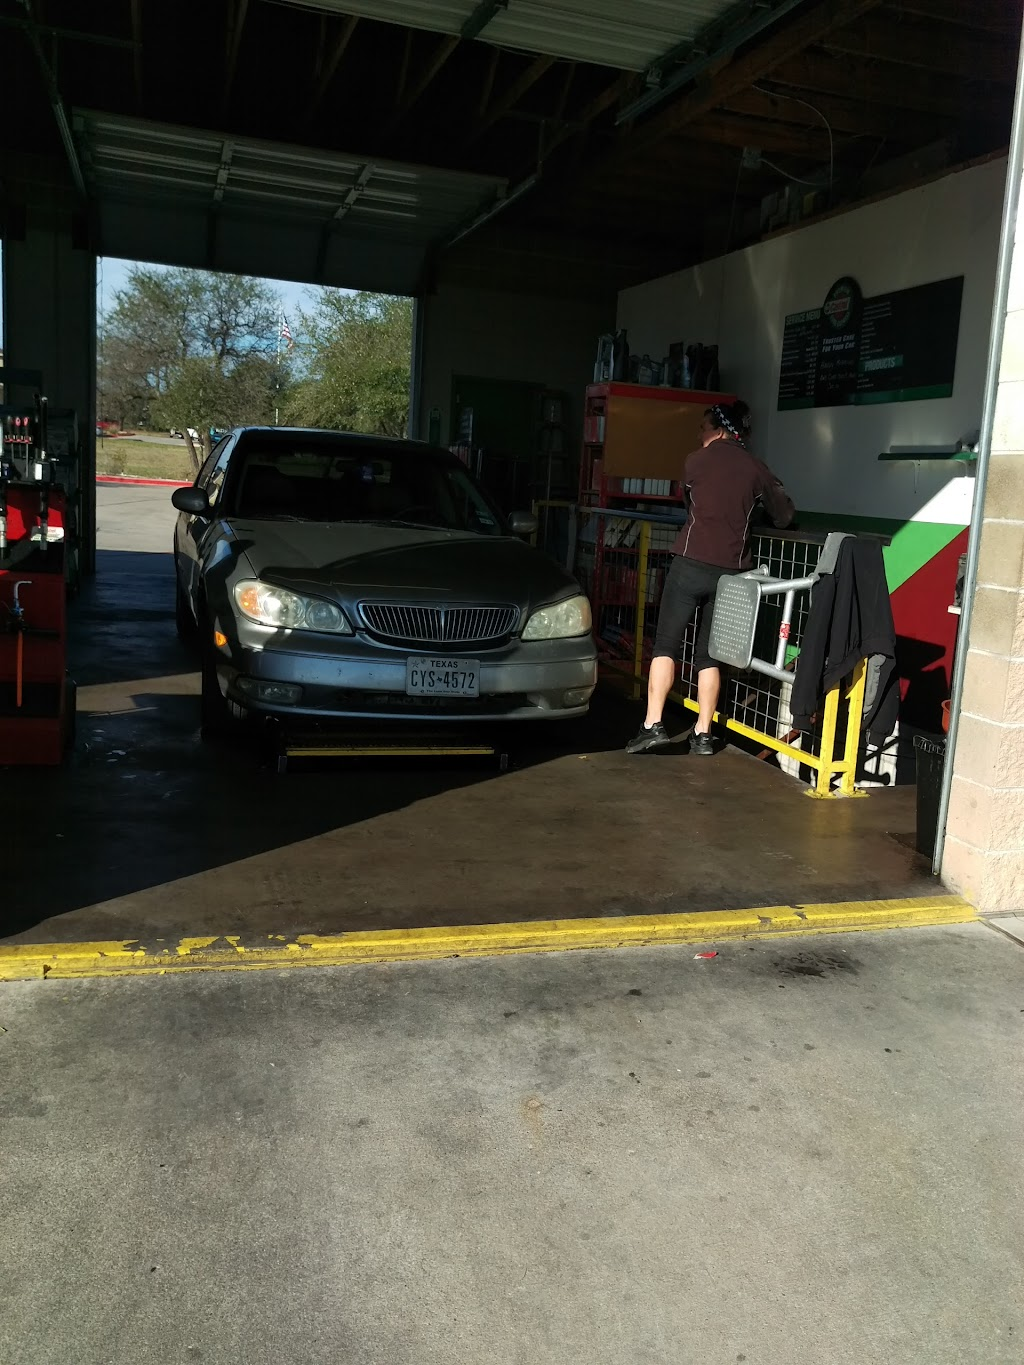 Castrol Premium Lube Express - car repair  | Photo 8 of 10 | Address: CPLE, 400 Crystal Falls Pkwy STORE # 1566, Leander, TX 78641, USA | Phone: (512) 528-1514